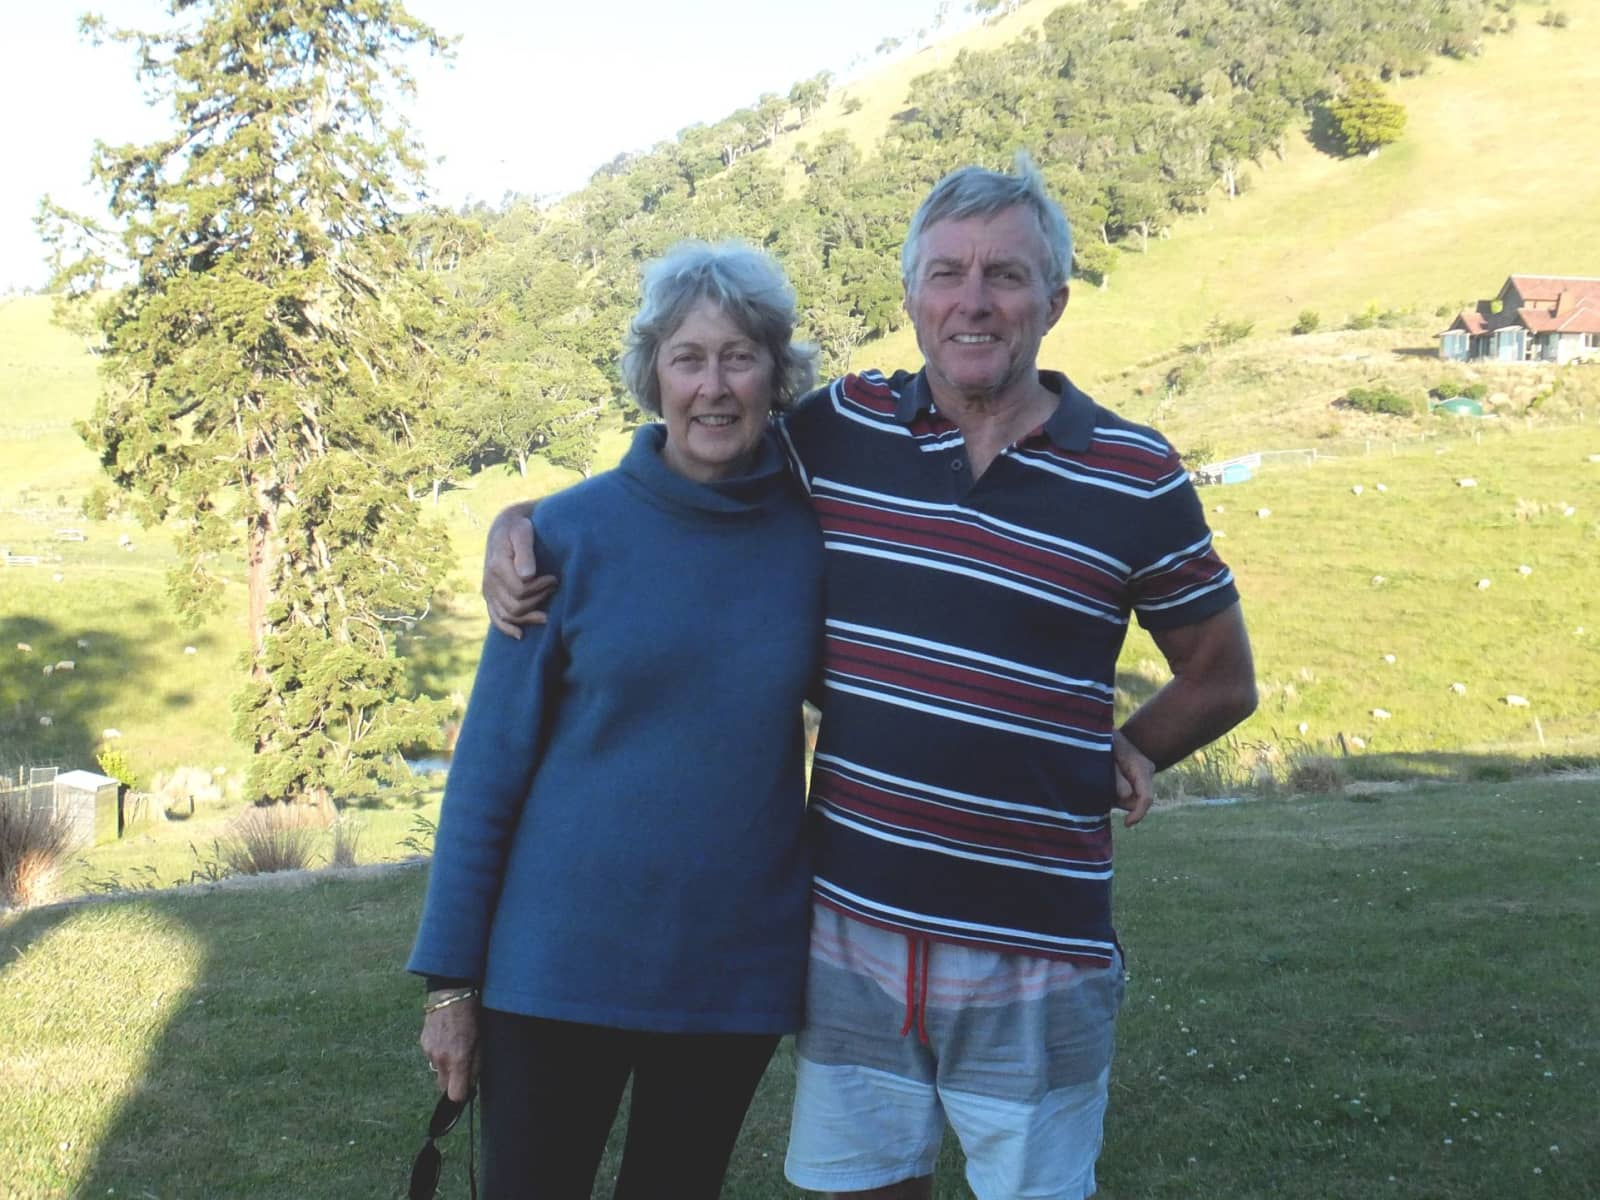 Caroline & Bill from Christchurch, New Zealand